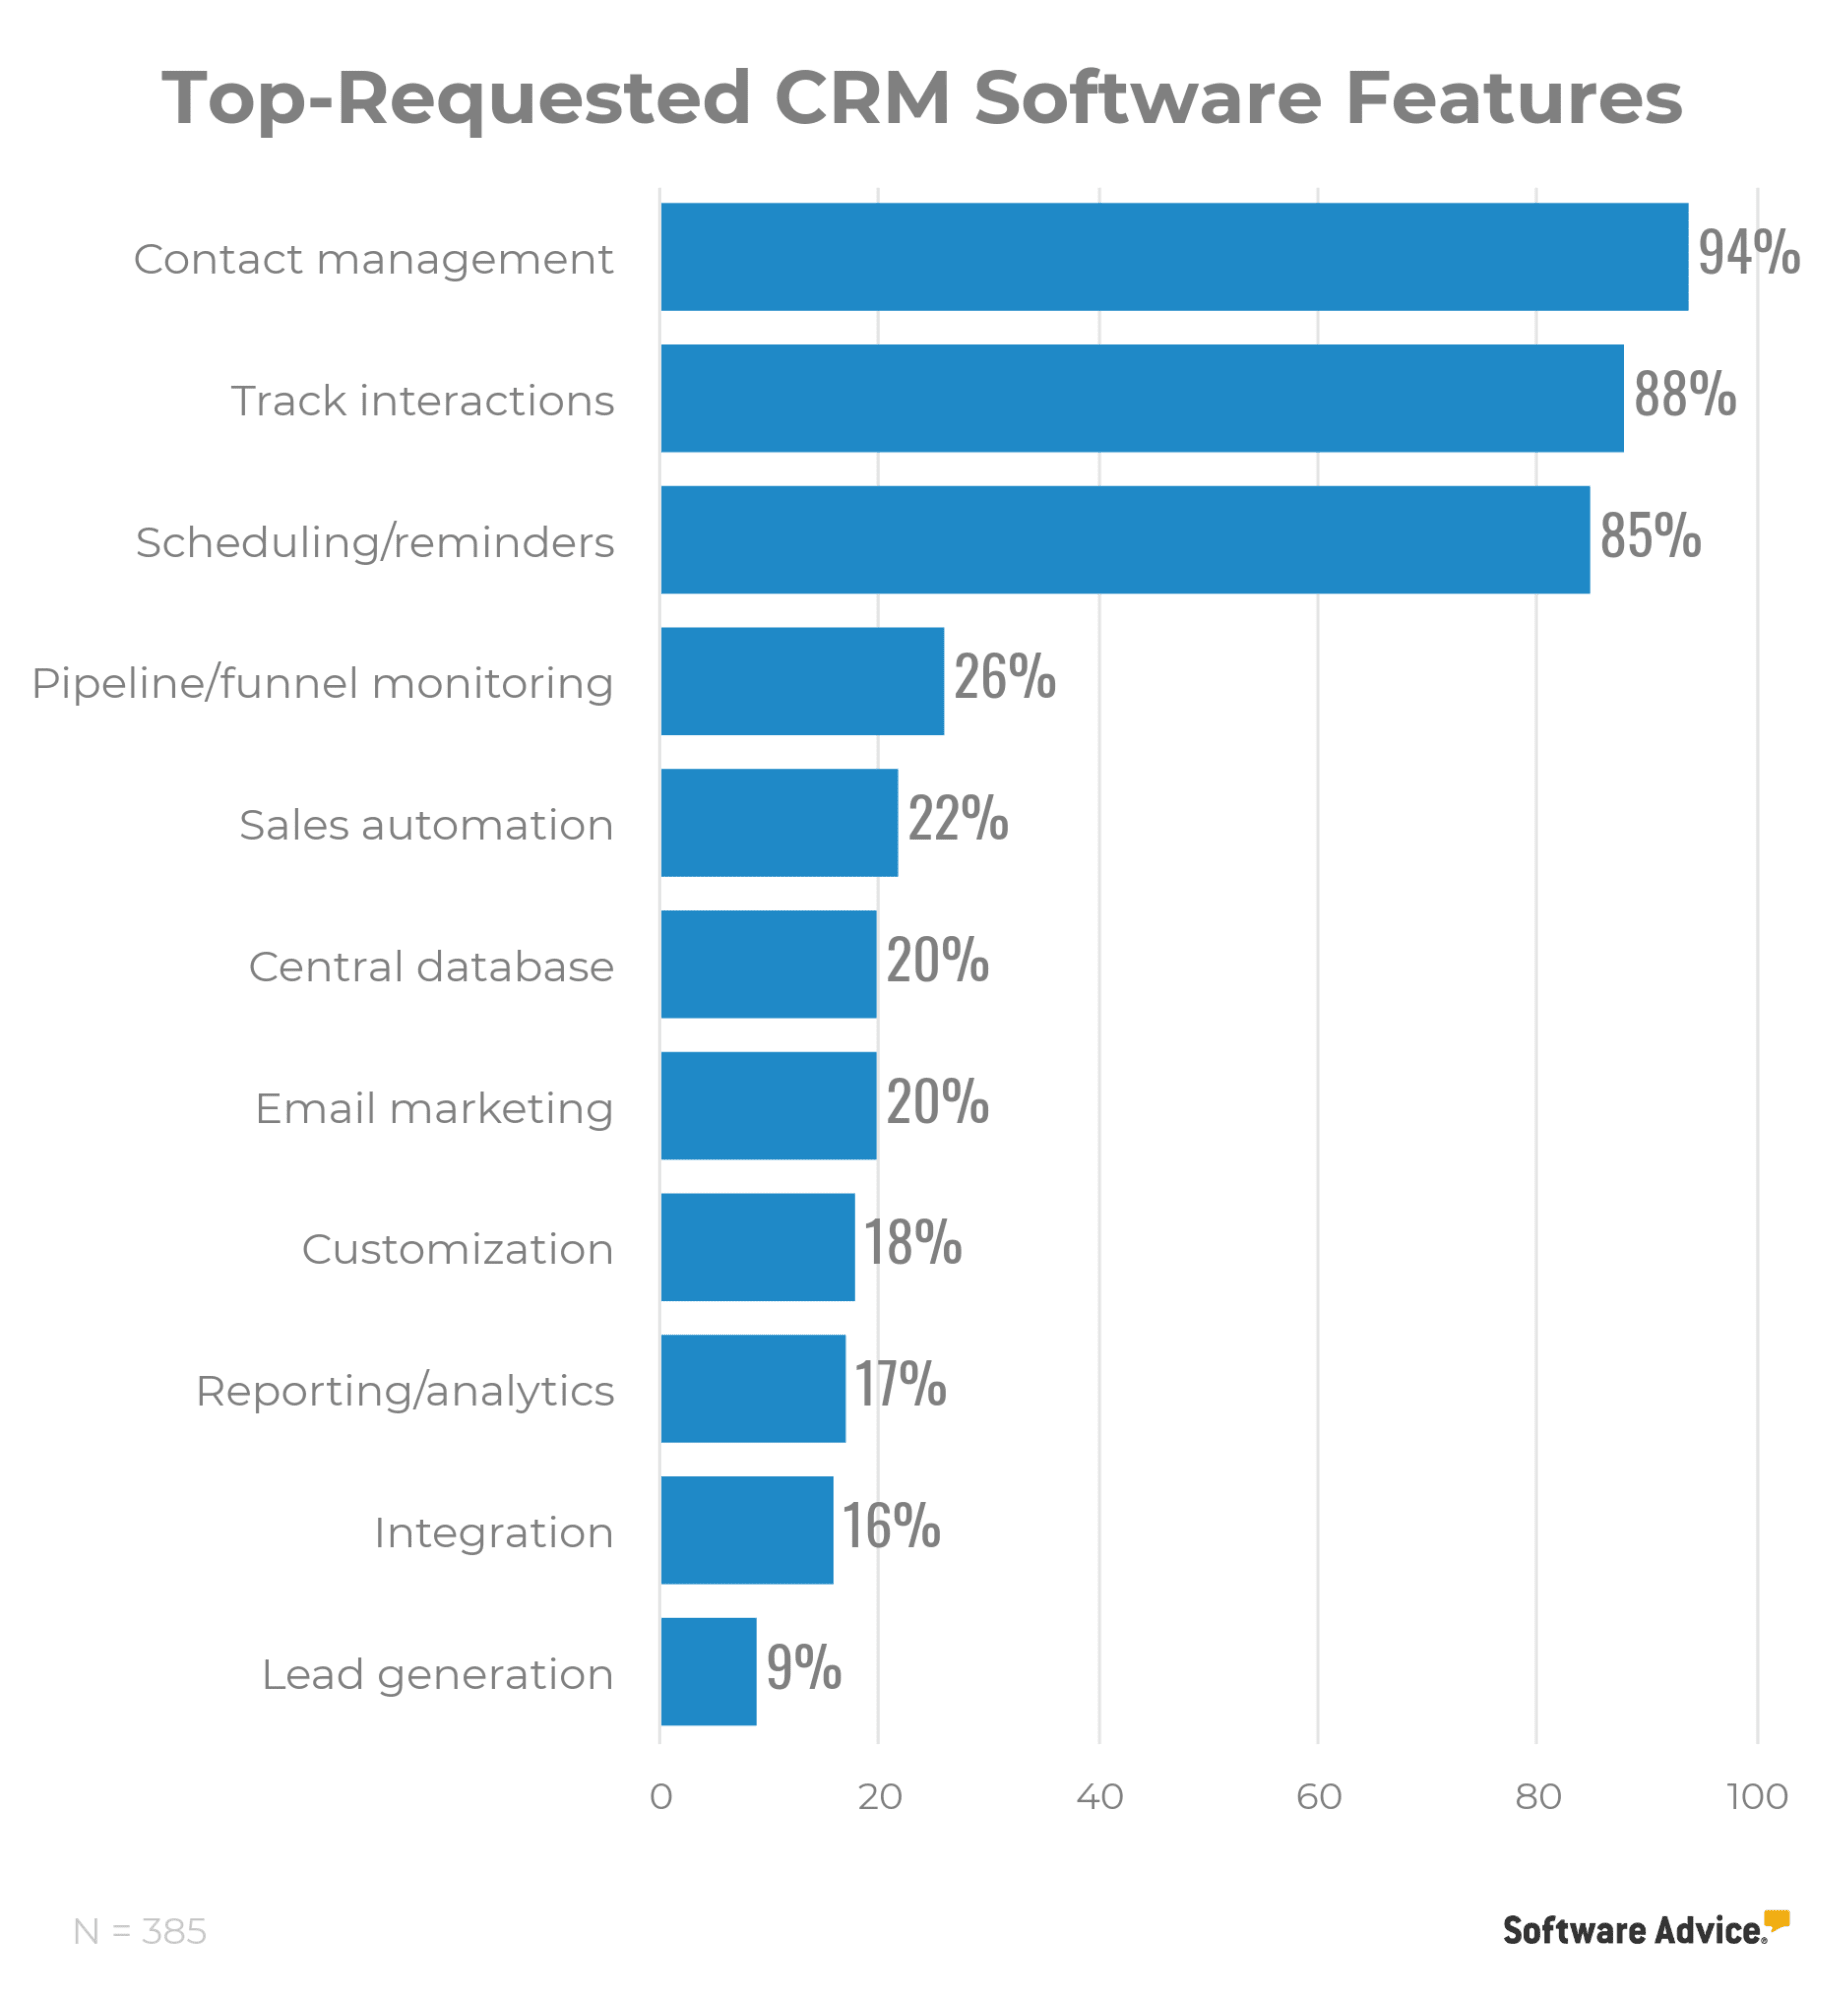 Bar graph showing top-requested CRM software features